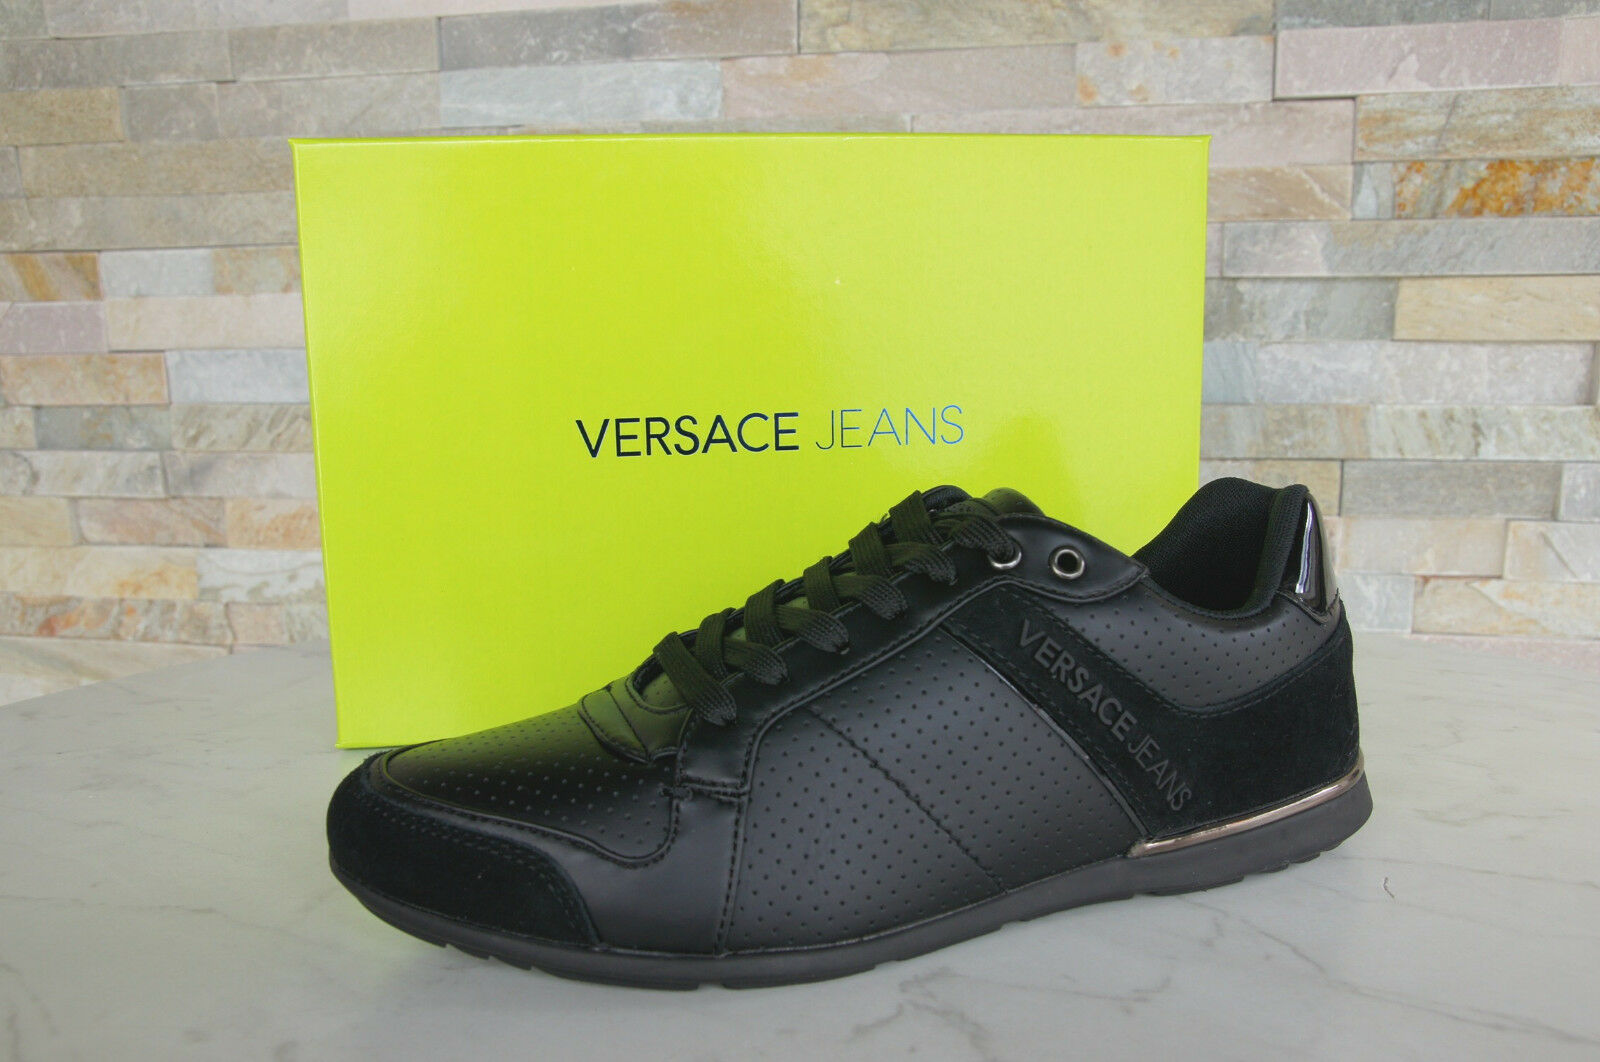 Versace Jeans Size 42 Sneakers Lace up shoes Black New Previously